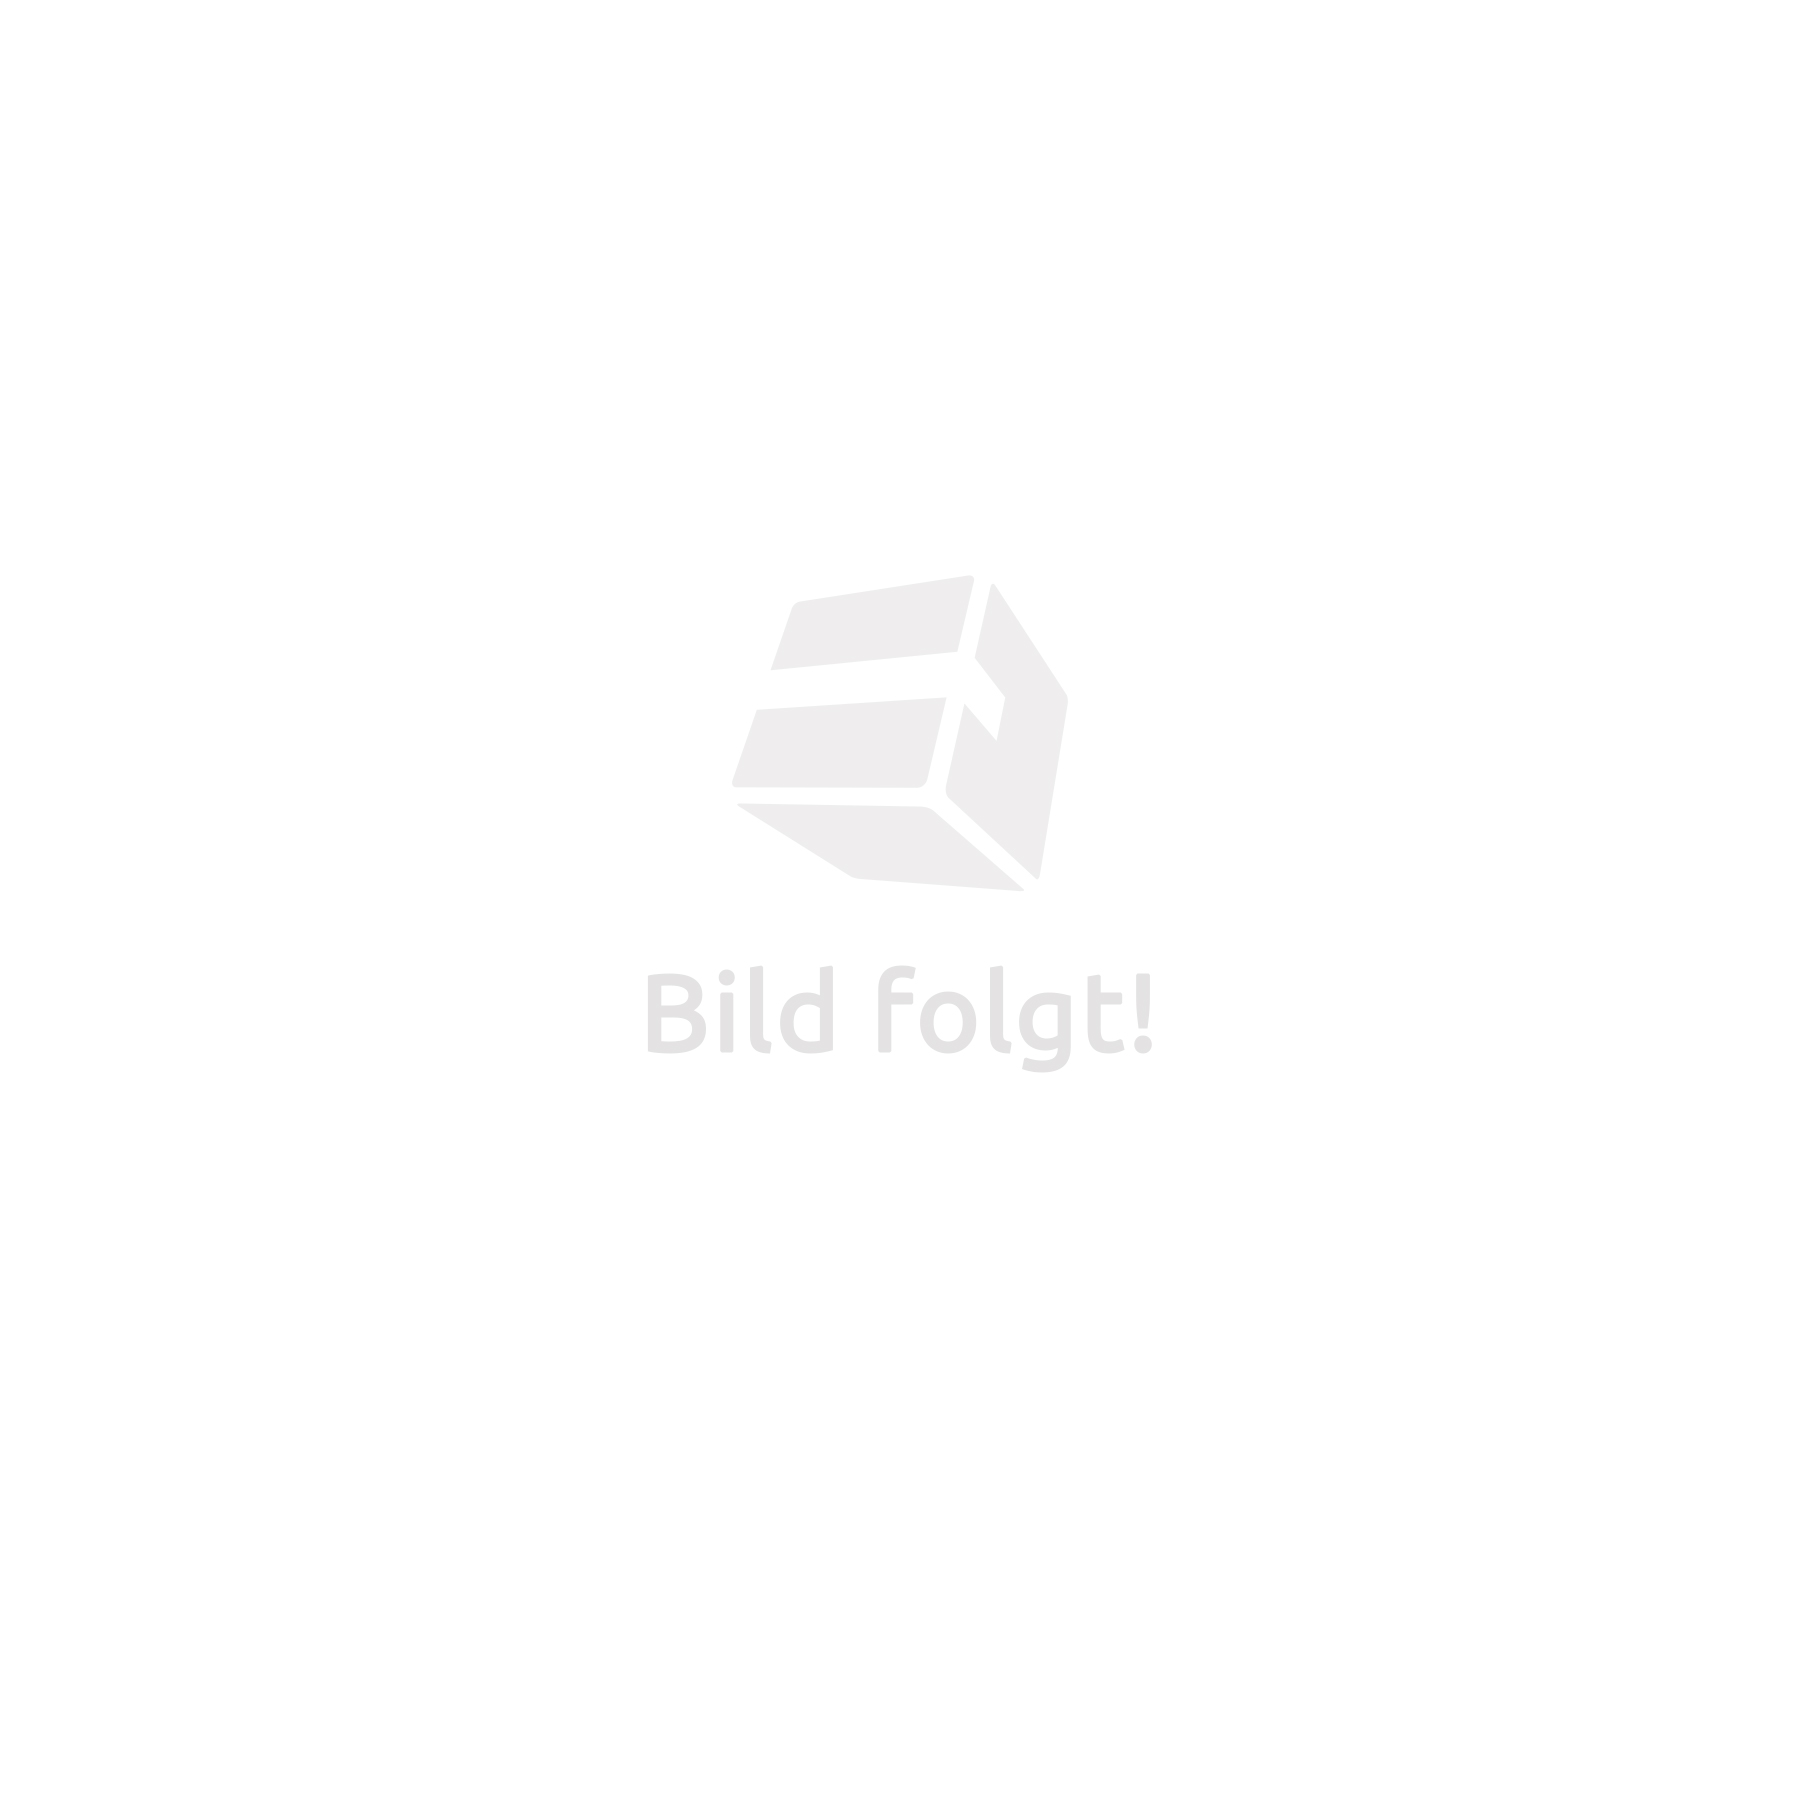 matelas de plage rembourr dossier r glable tapis chaise camping portable bleu ebay. Black Bedroom Furniture Sets. Home Design Ideas